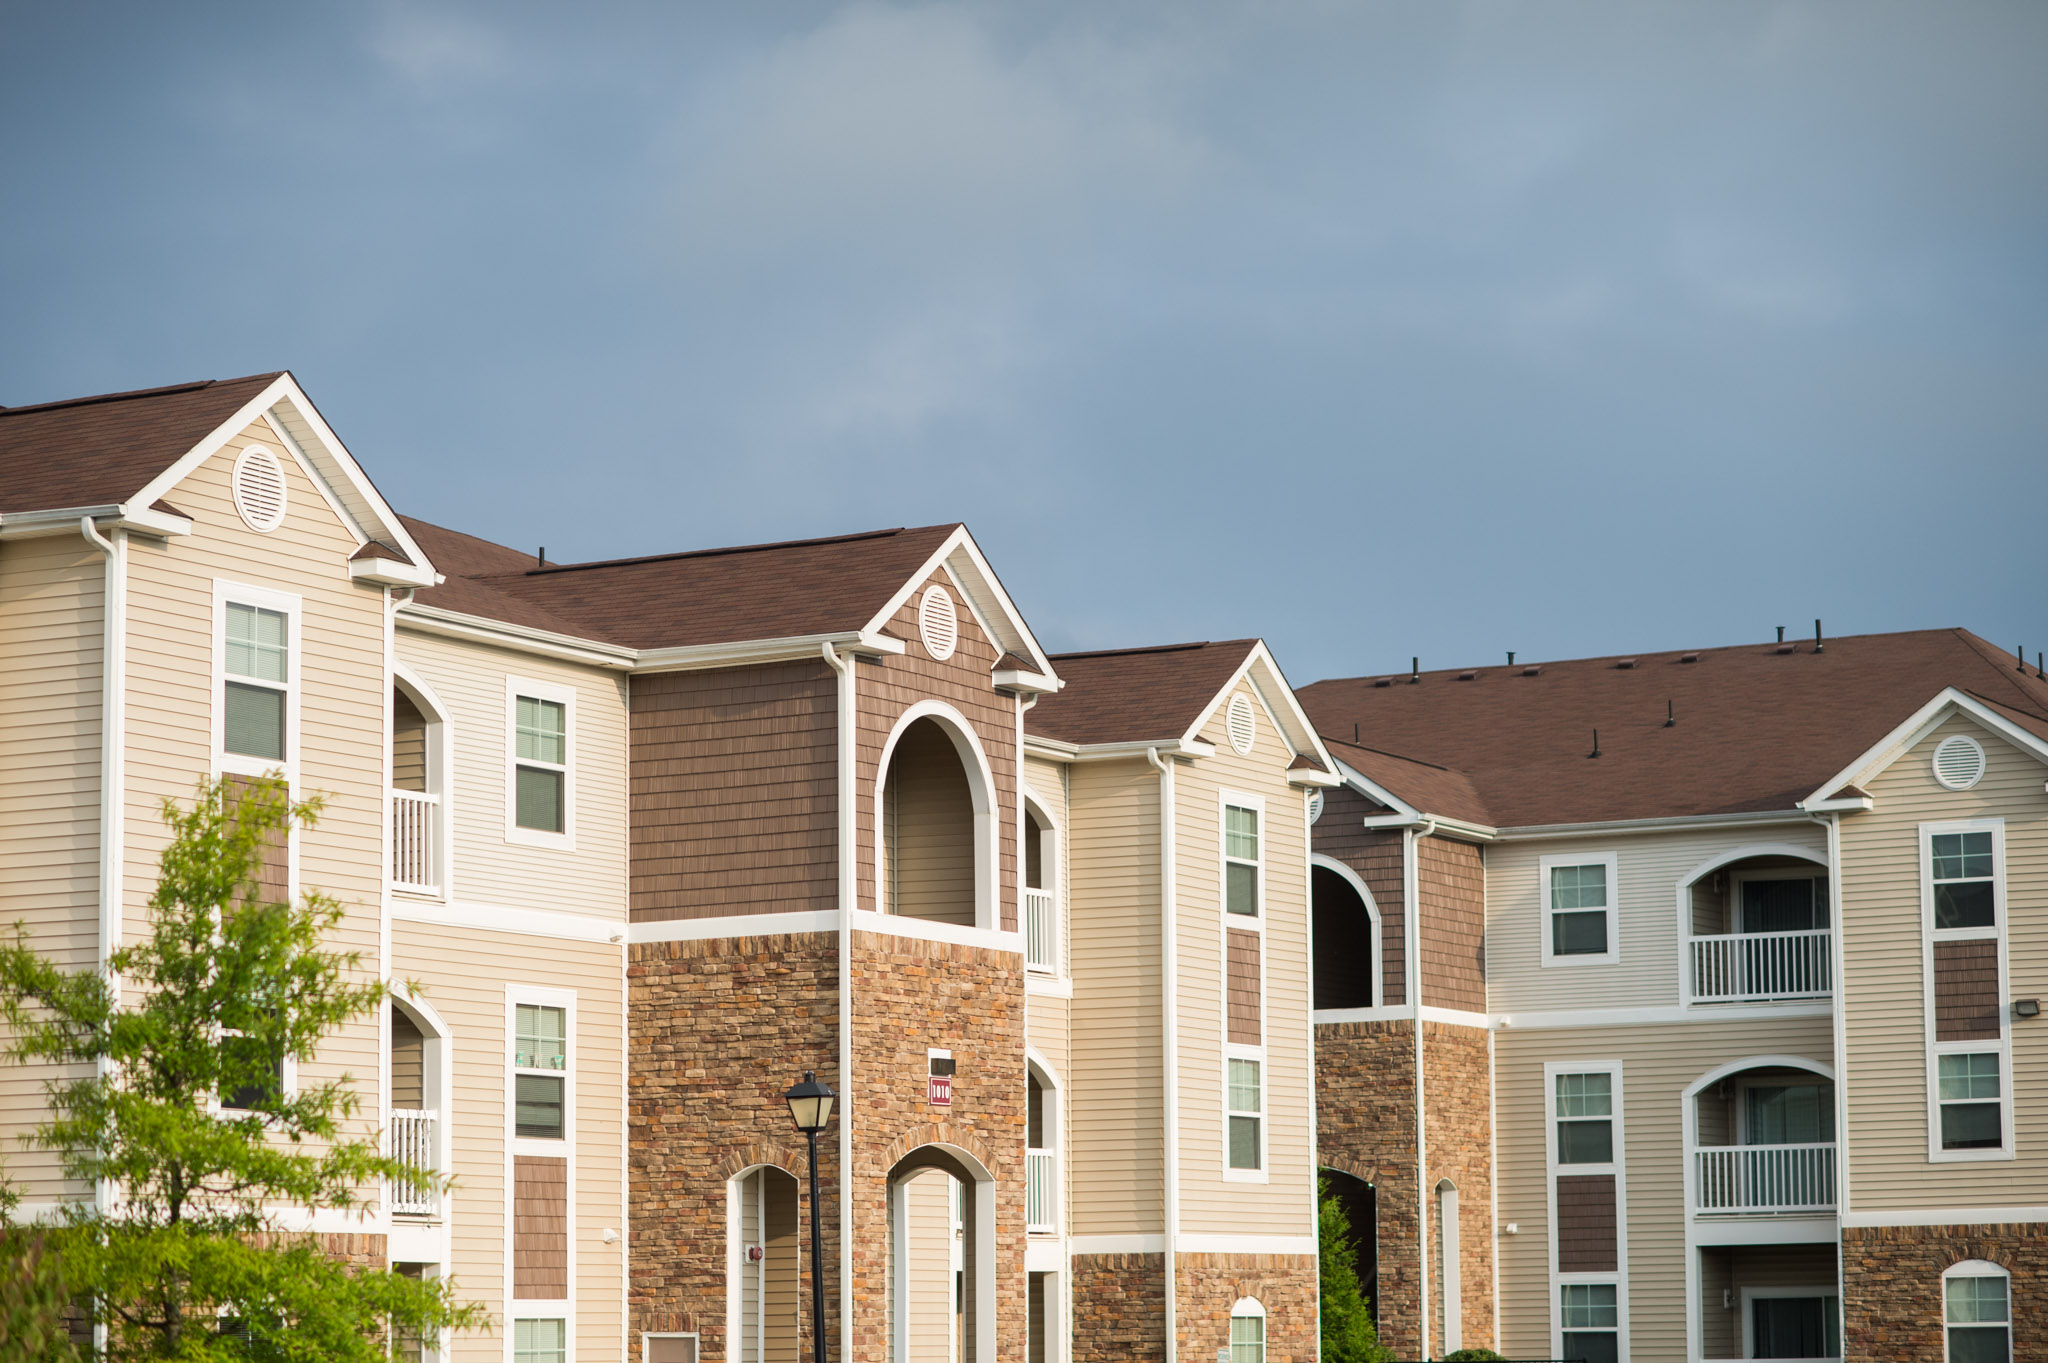 North 38 Exteriors for Web-1007.jpg